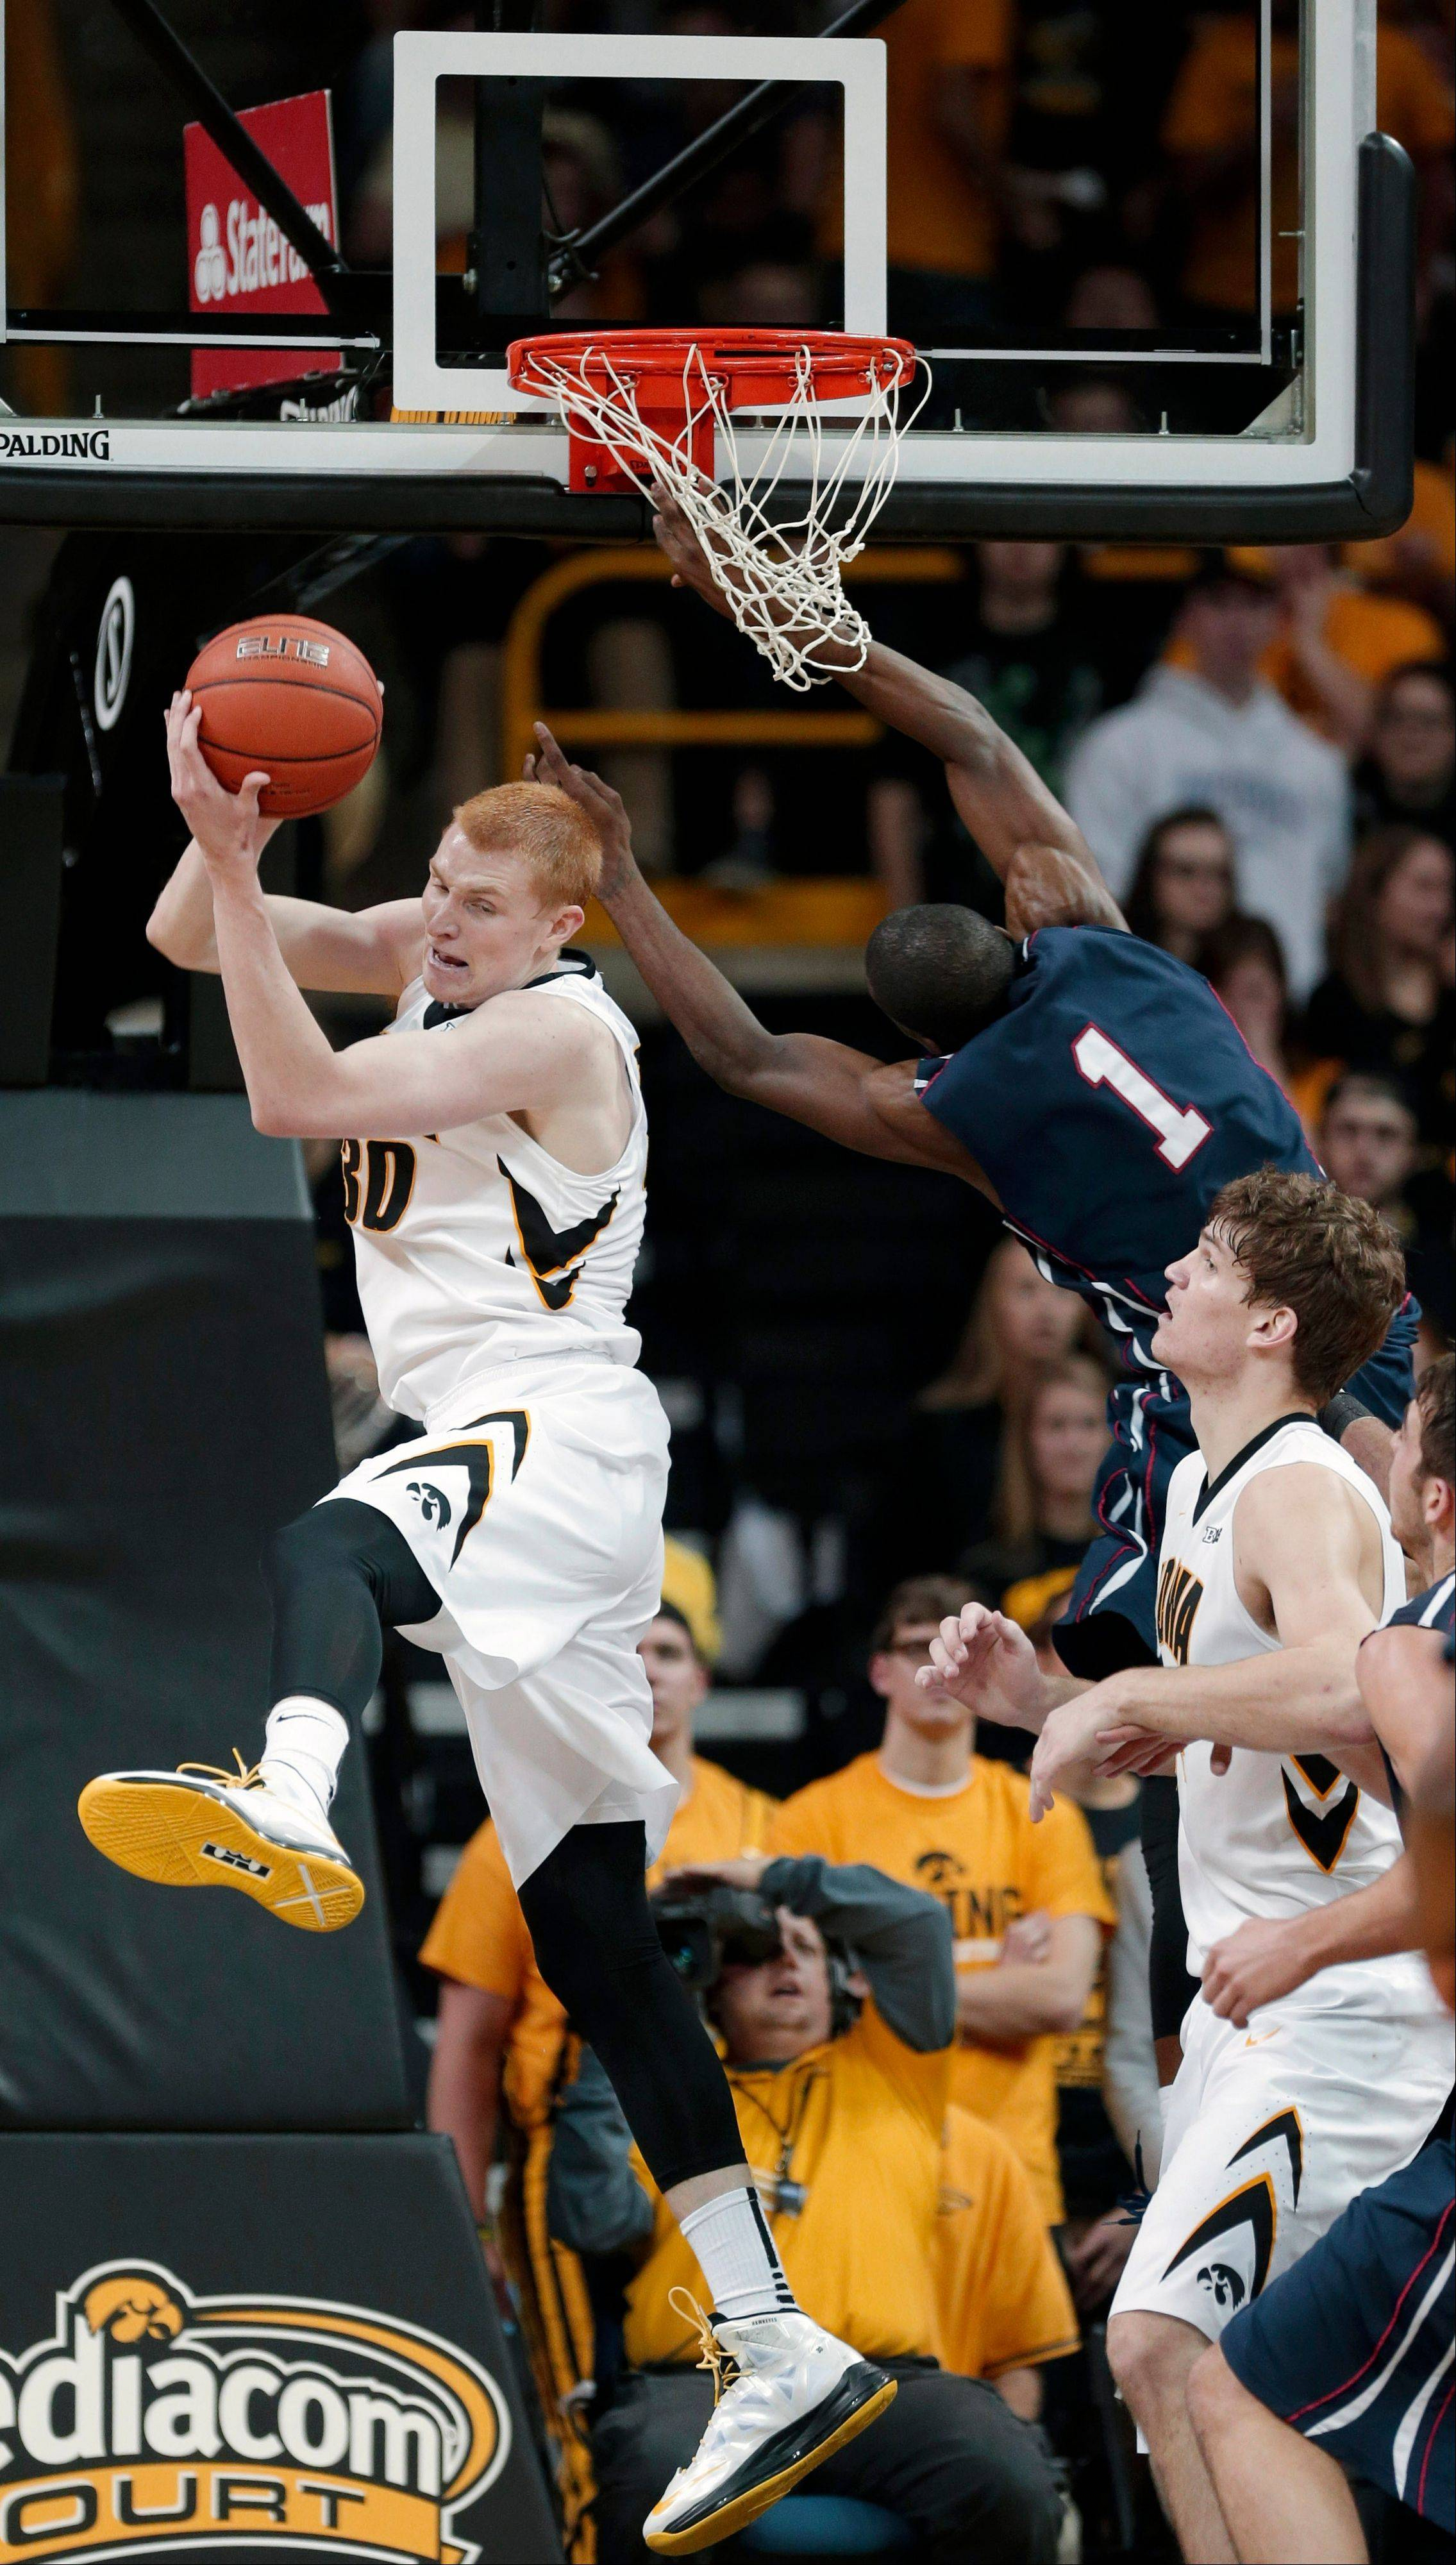 Iowa forward Aaron White, left, grabs a rebound over teammate Adam Woodbury, right, and Penn guard Tony Hicks during the second half of Friday's game in Iowa City.